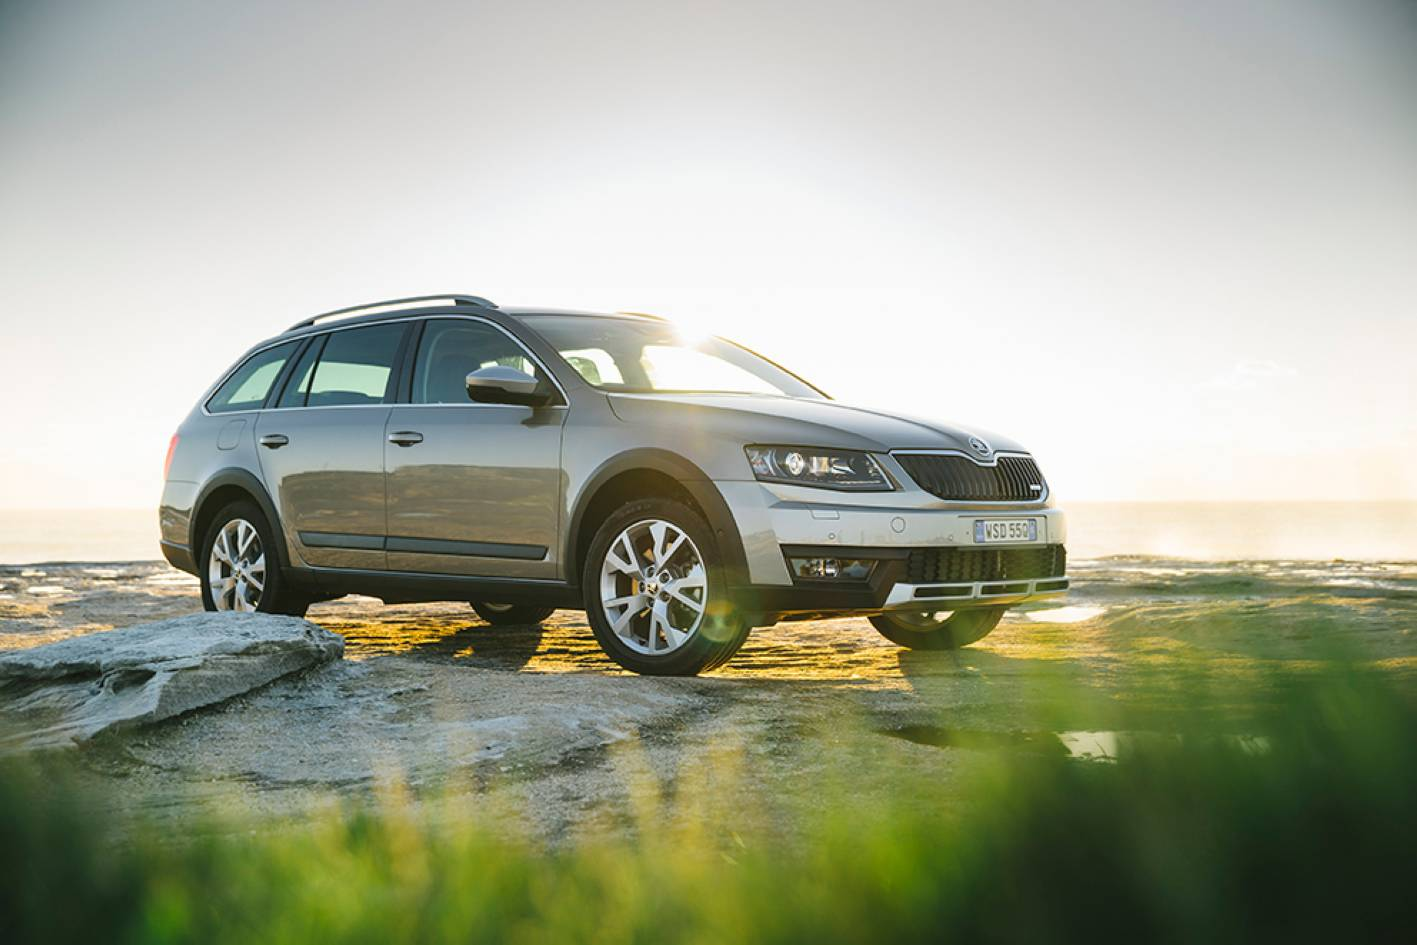 skoda cars news octavia scout 4x4 joins australian range. Black Bedroom Furniture Sets. Home Design Ideas